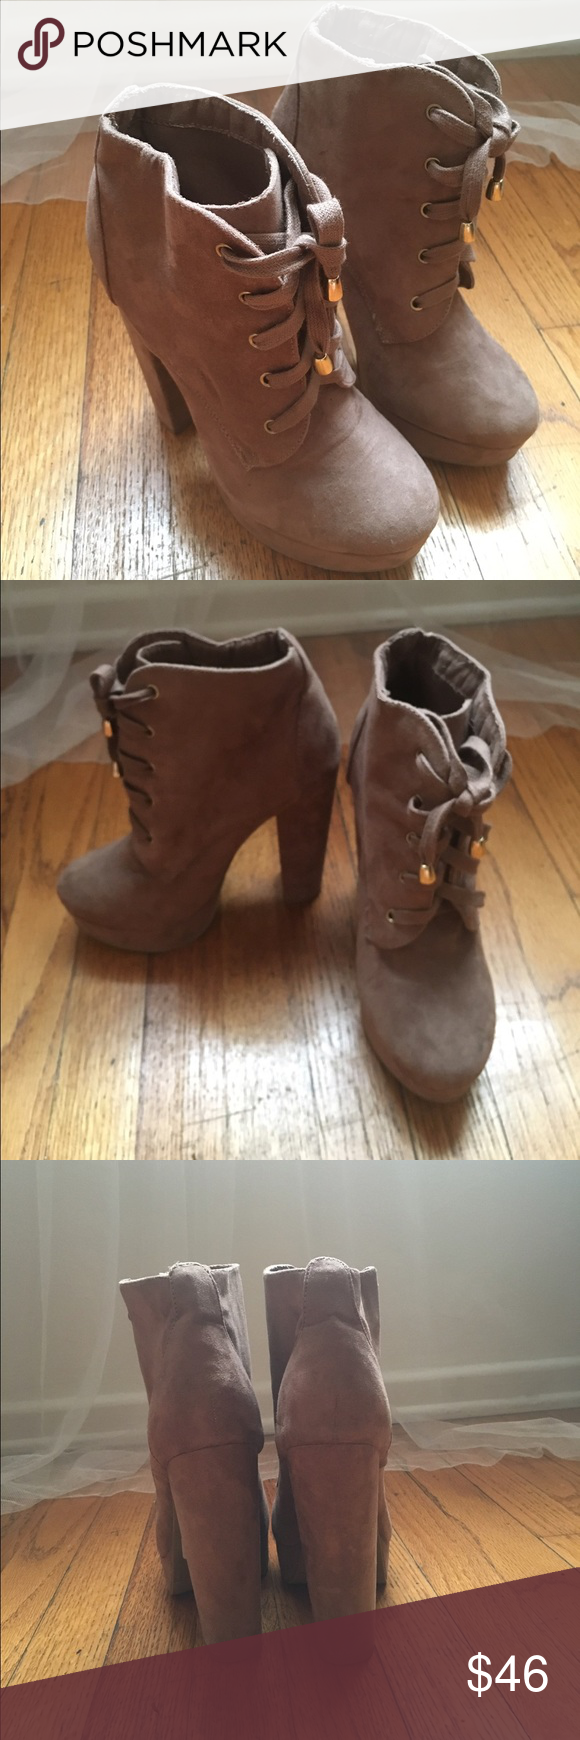 Stylish Plateform Booties!! Stylish Suede Plateform Booties that goes with all your everyday wear wardrobe!! Wore it once only!! Still very new!! Shoes Ankle Boots & Booties